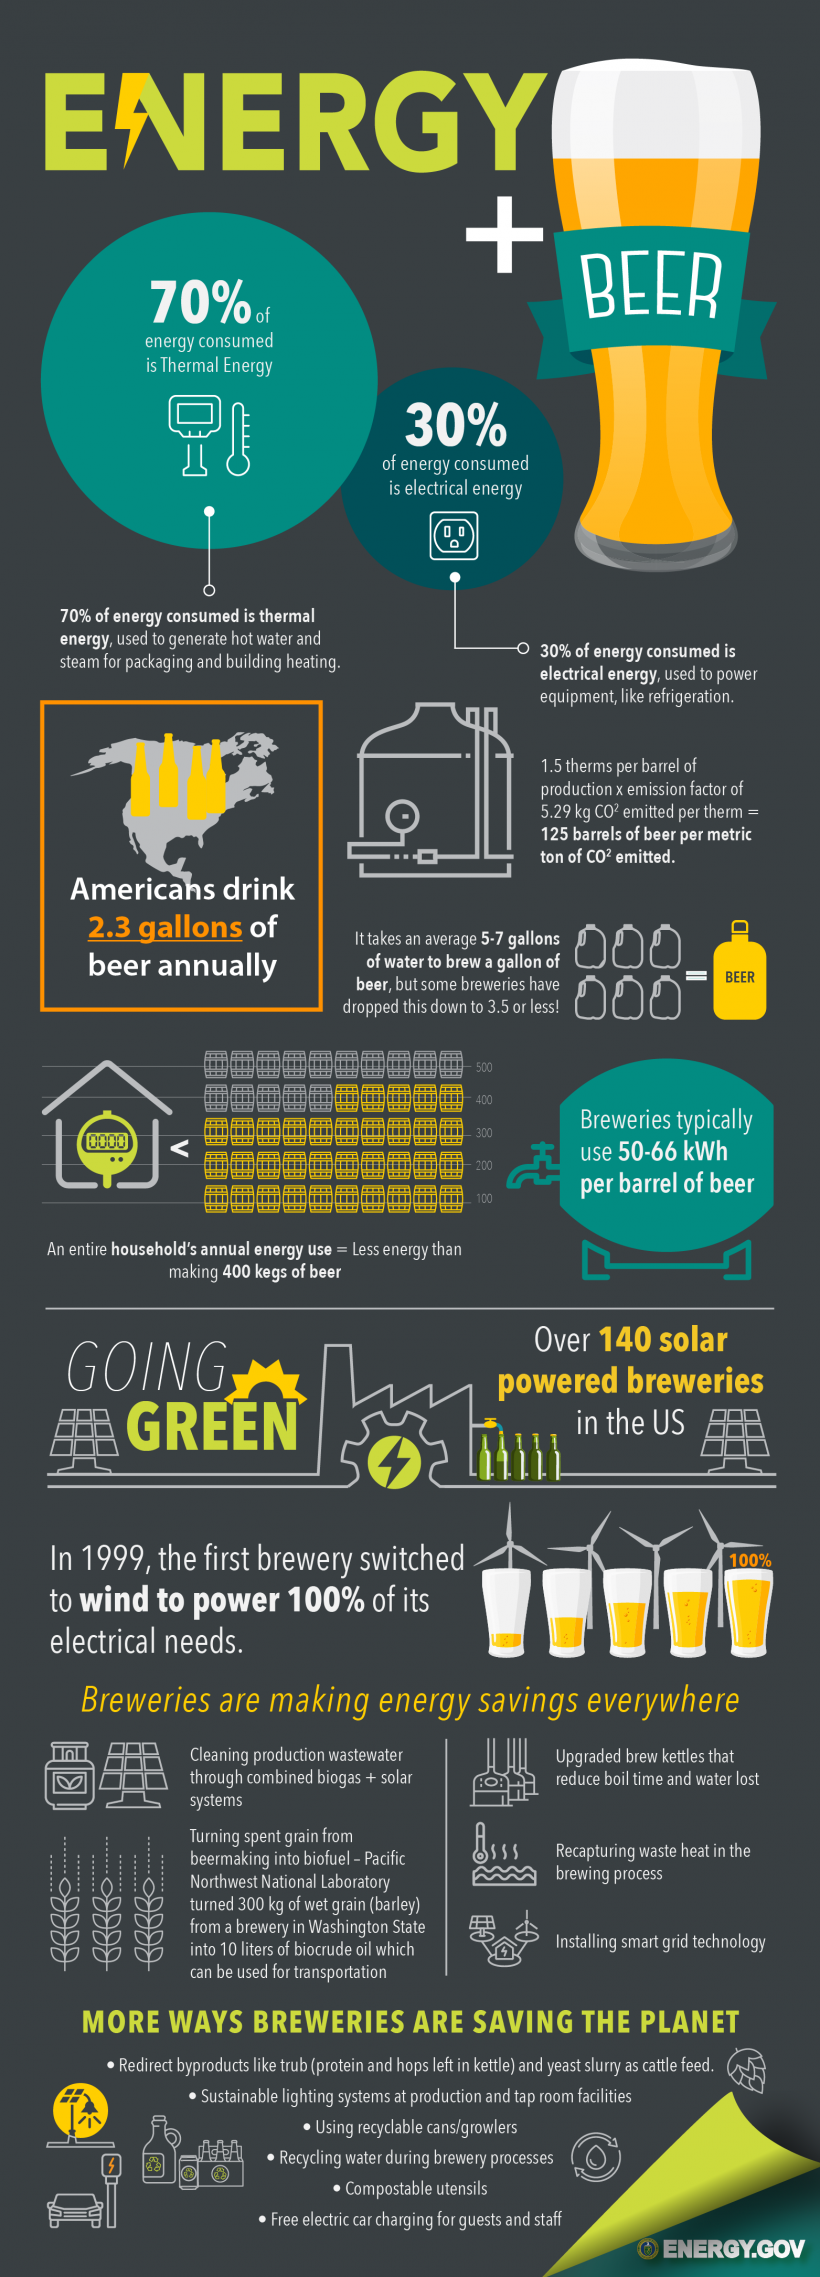 To mark National Beer Day (April 7) we're bringing you some energy stats on what it takes to brew up ales, stouts, IPAs, lagers, and more, and shed some light on how clean energy is changing the game.